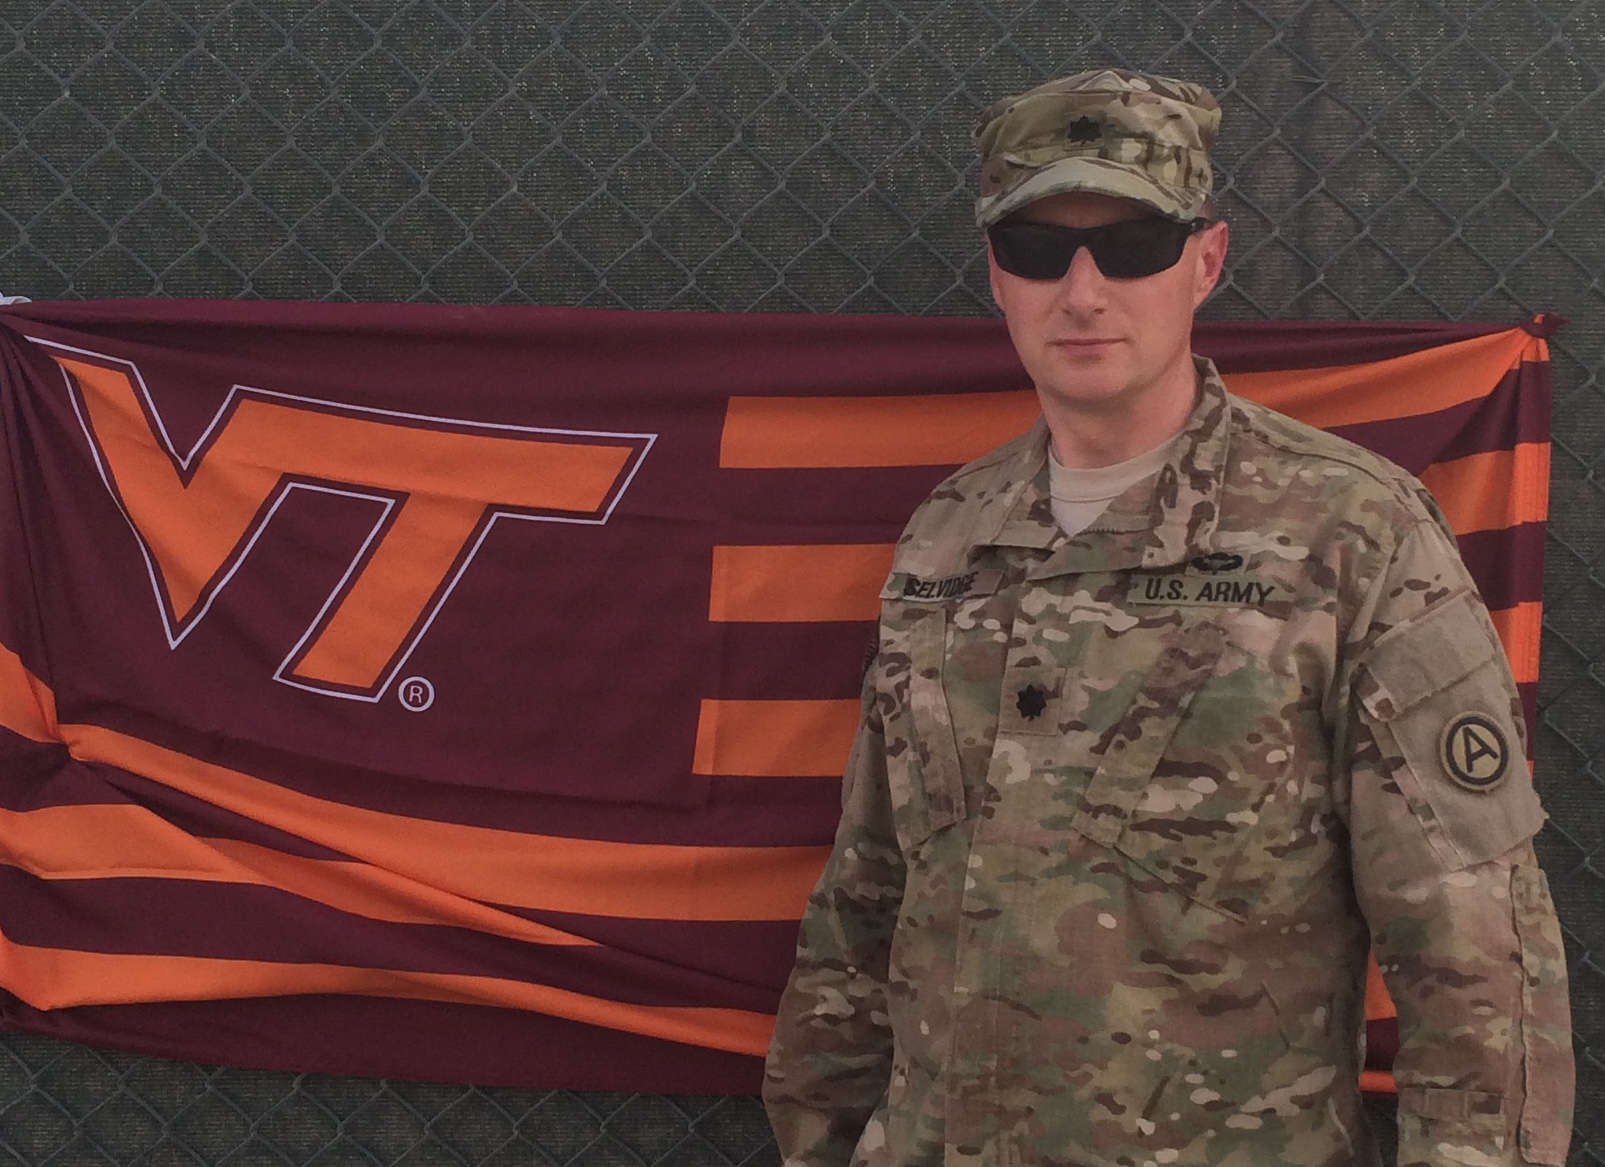 Lt. Col. Roy Selvidge, U.S. Army, Virginia Tech Corps of Cadets Class of 1993 standing in front of a VT flag.